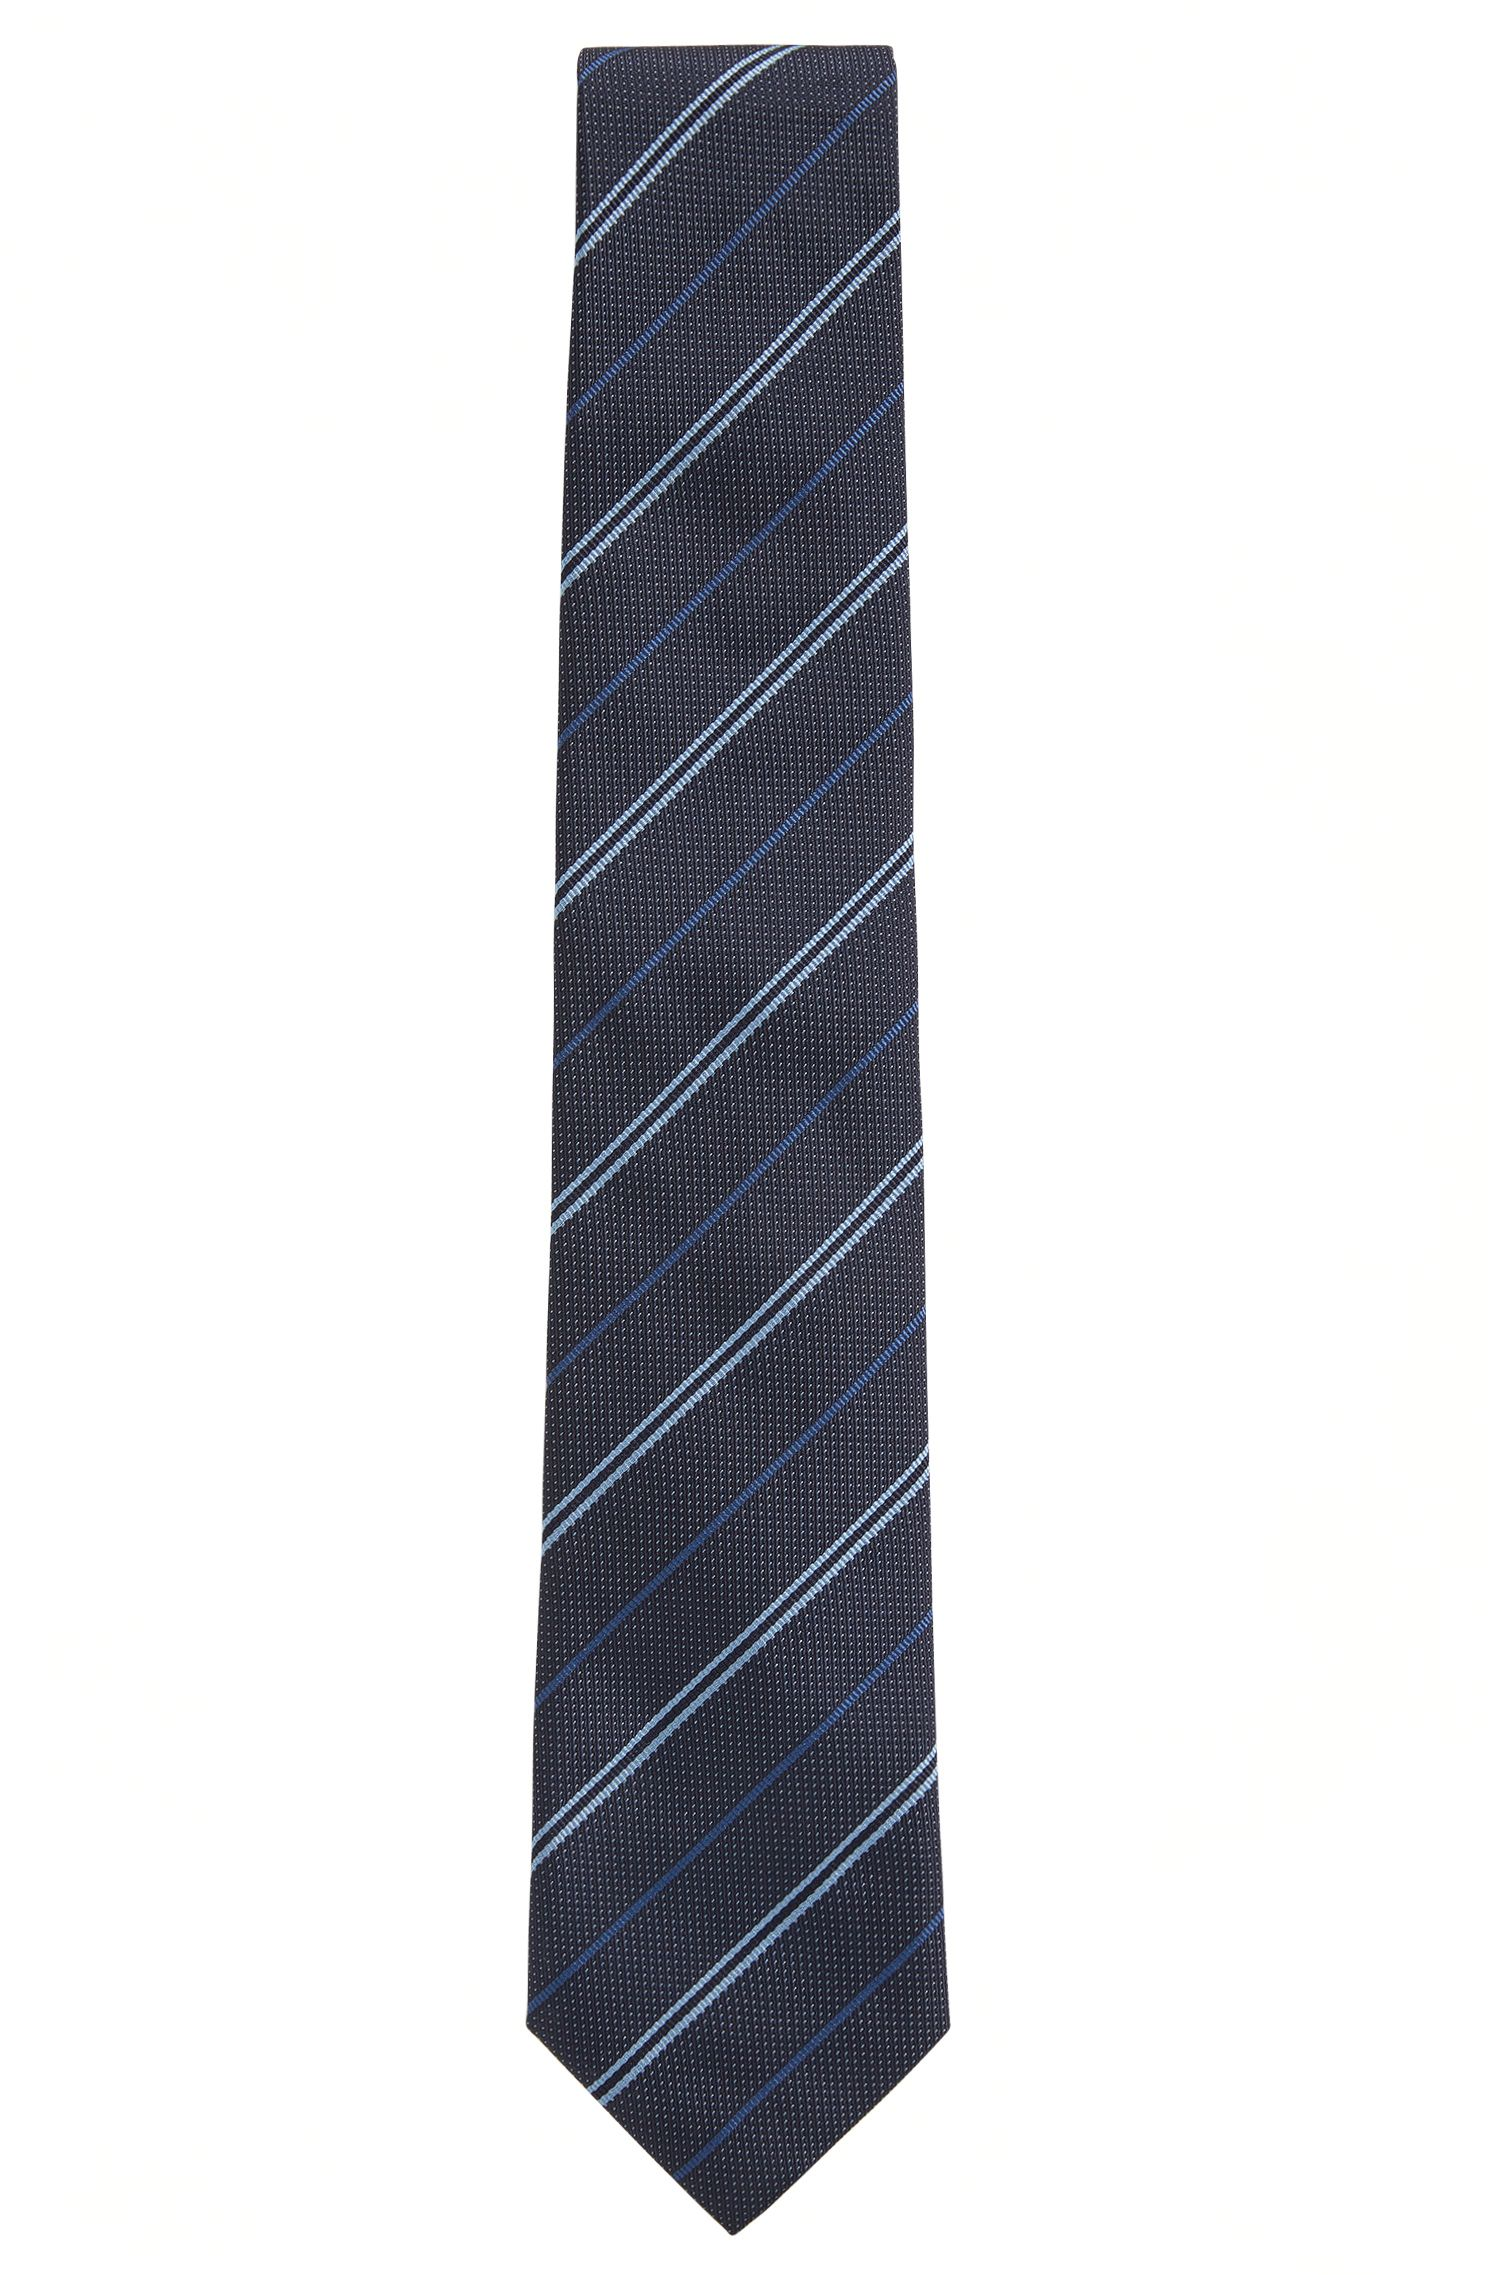 Silk tie in a diagonal striped jacquard